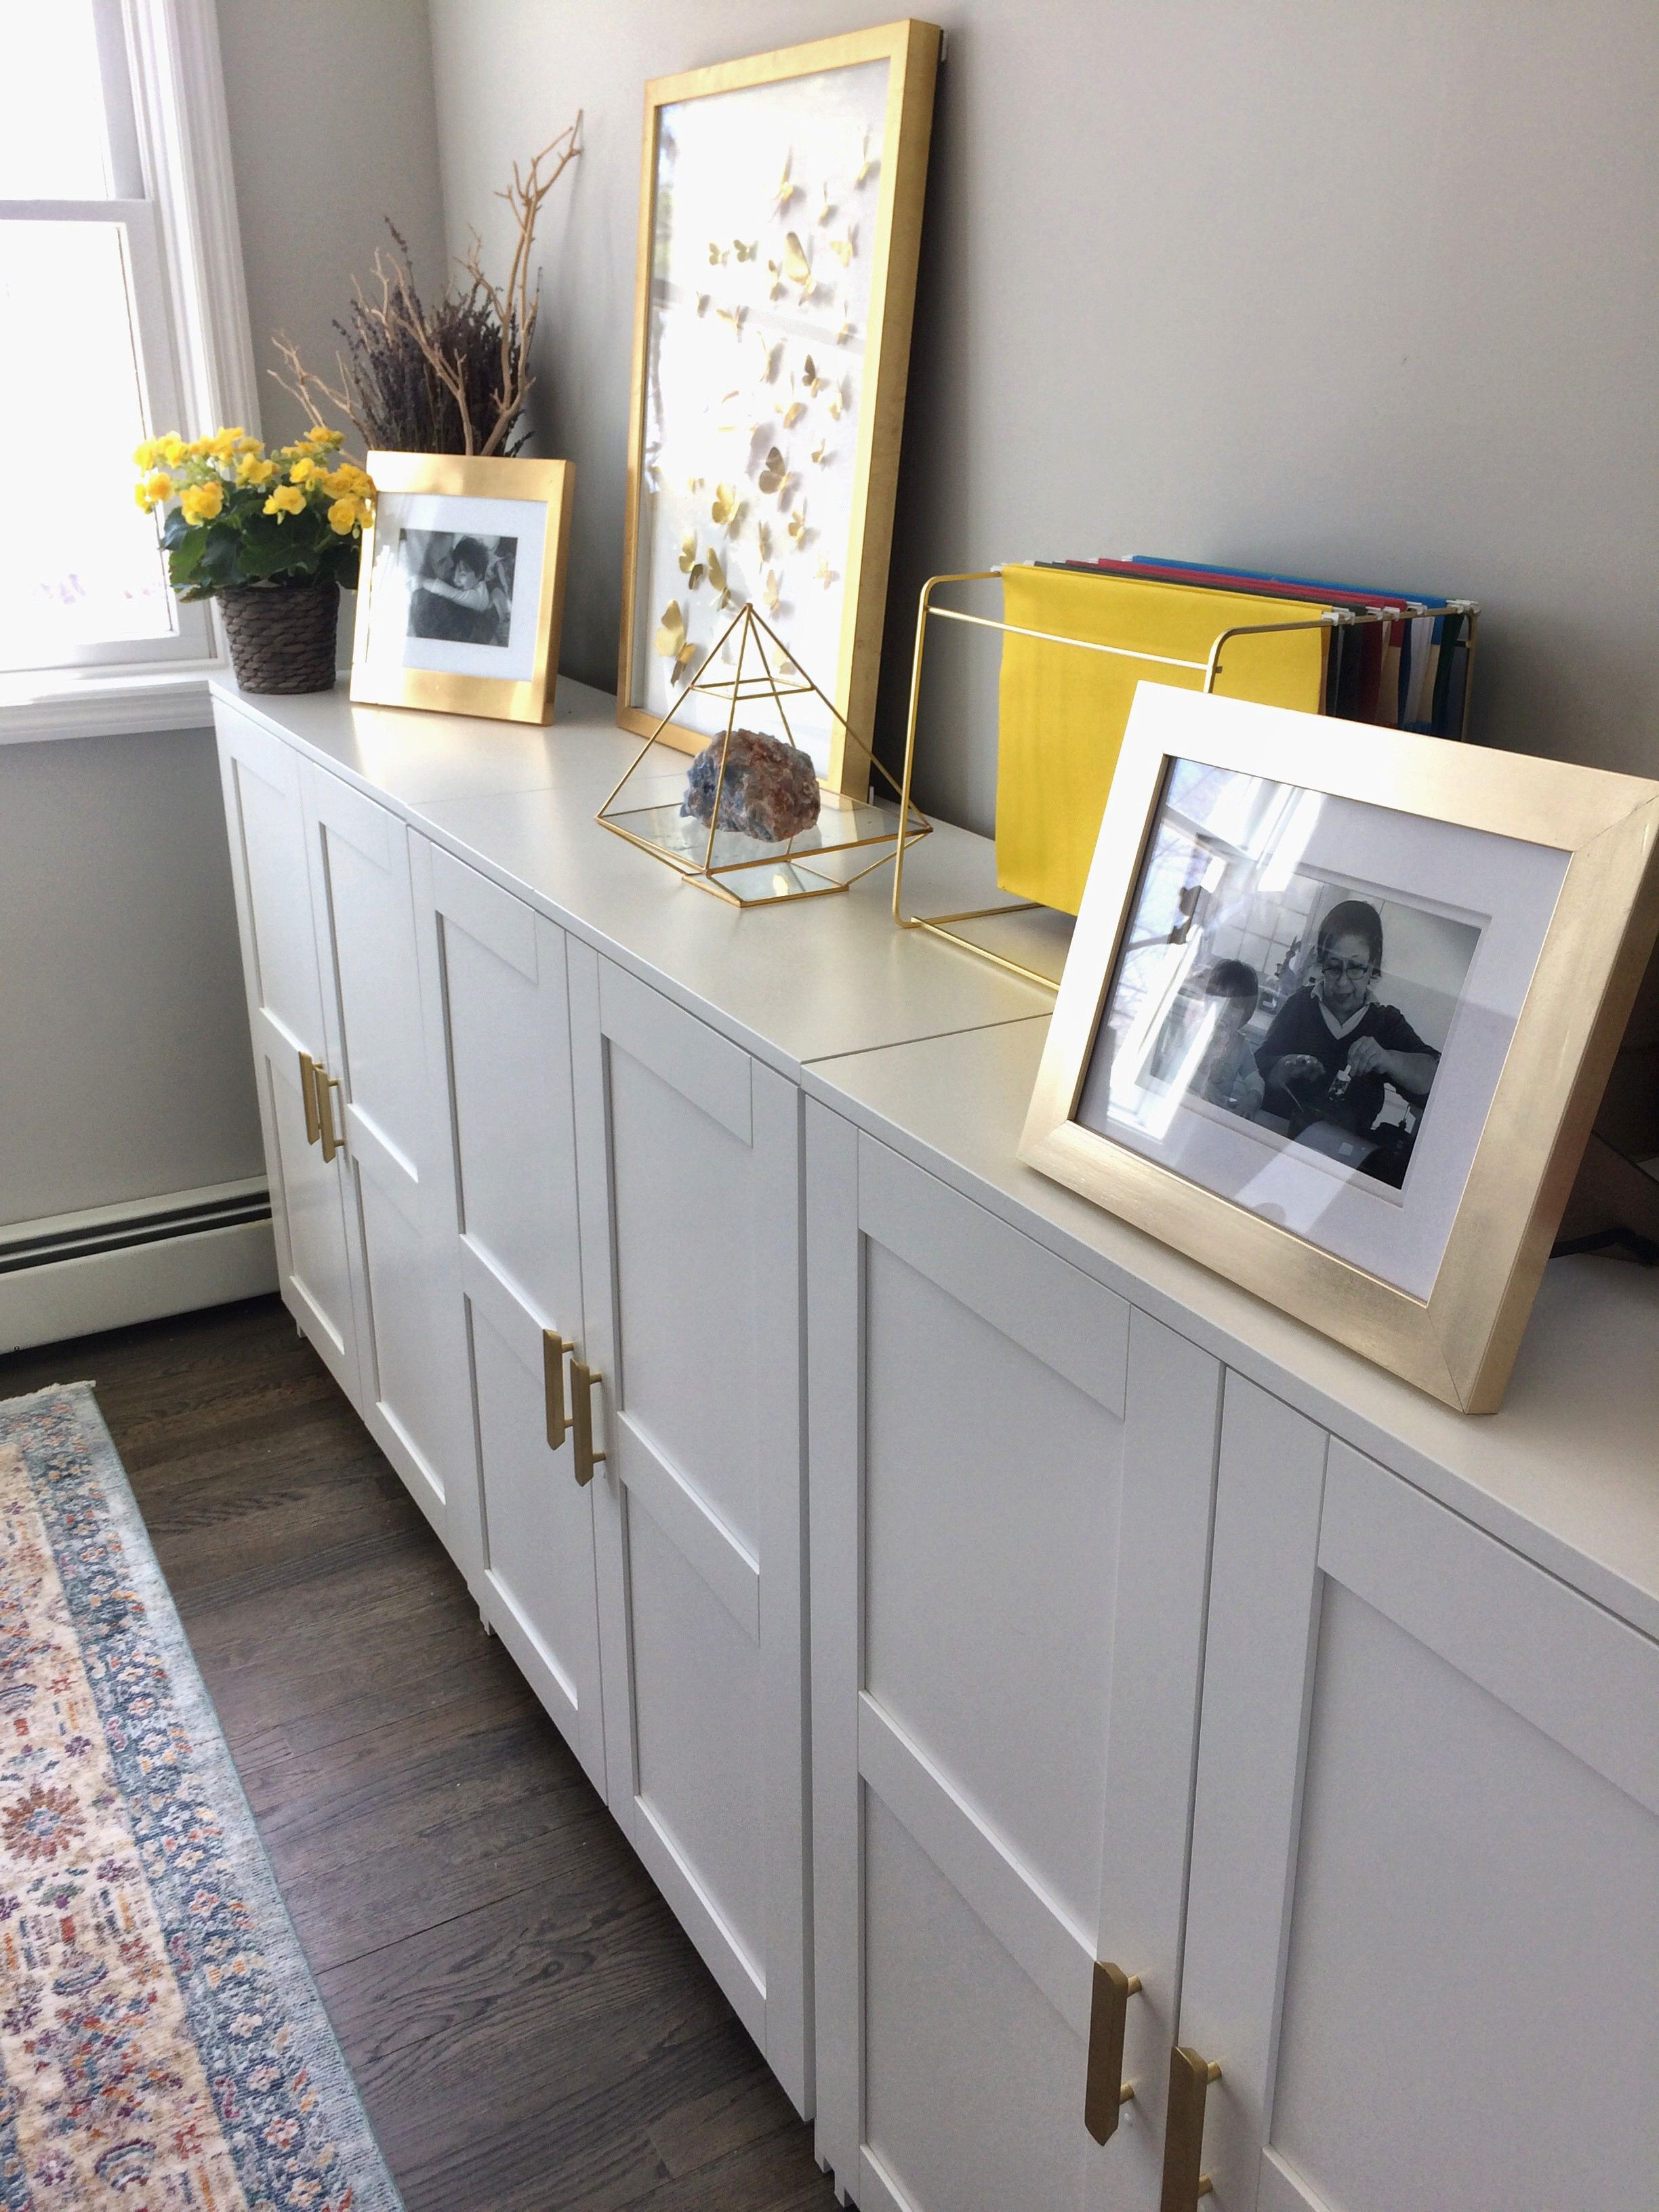 Ikea Cabinet with Doors Inspirational Chic and Inspiring with Ikea Brimnes Gold Pull Cabinets